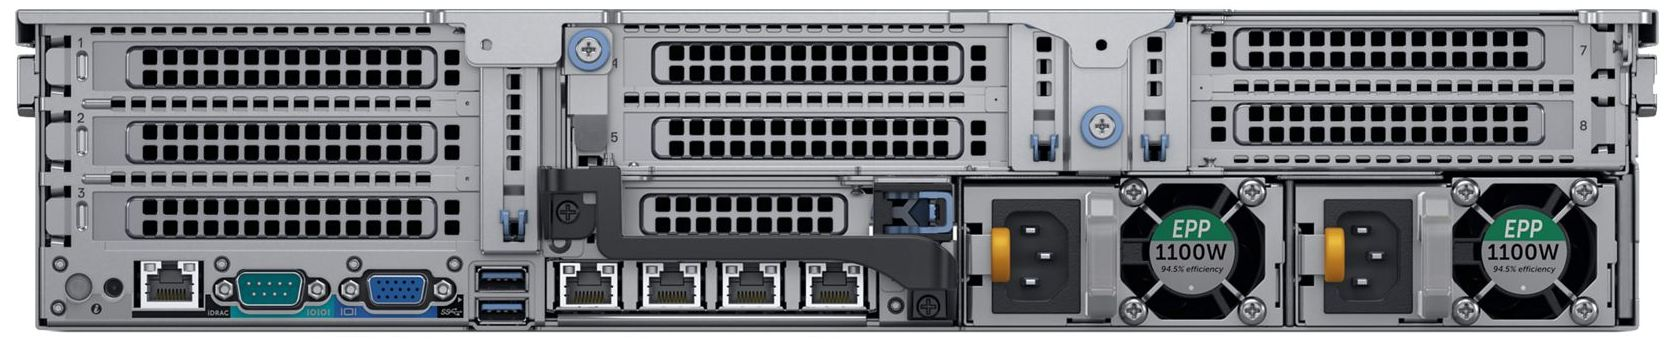 Dell EMC VxRail V-Series Rear